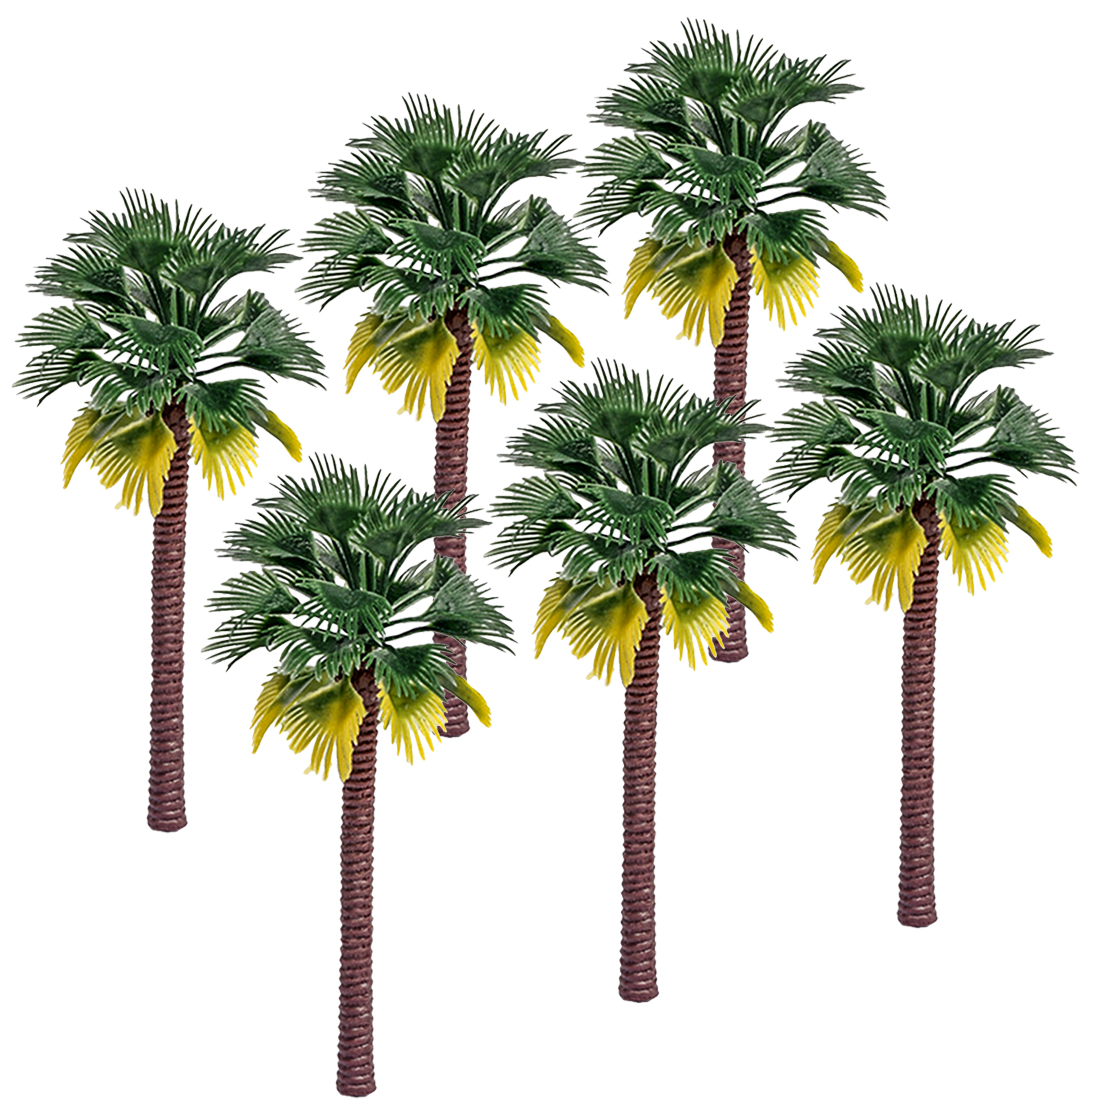 6 Pcs 12cm/15cm Plastic Coconut Palm Tree Train Railroad Architecture Diorama Tree Model Kits Toys Accessories Drop Shipping New